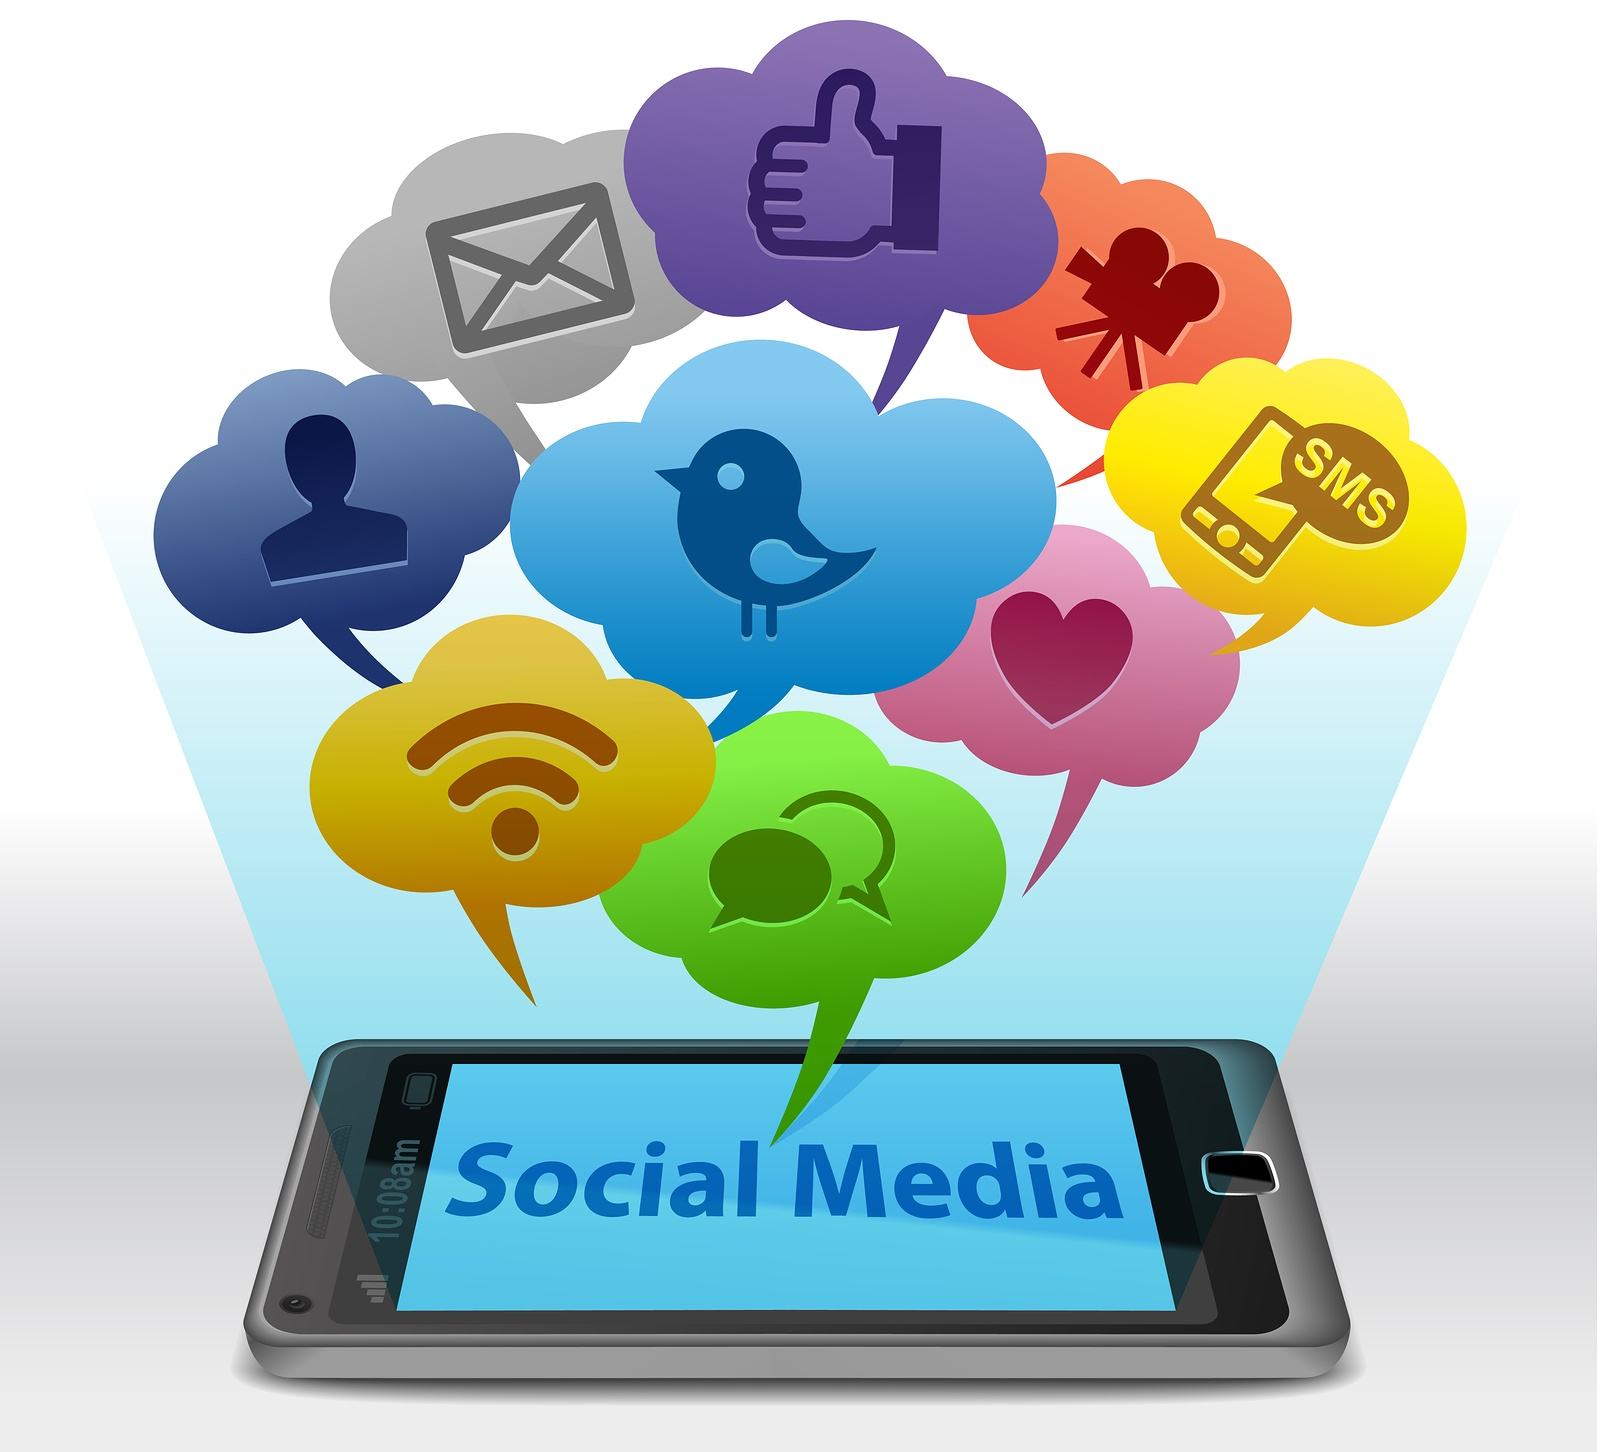 bigstock-Social-media-on-Smartphone-21485075.jpg